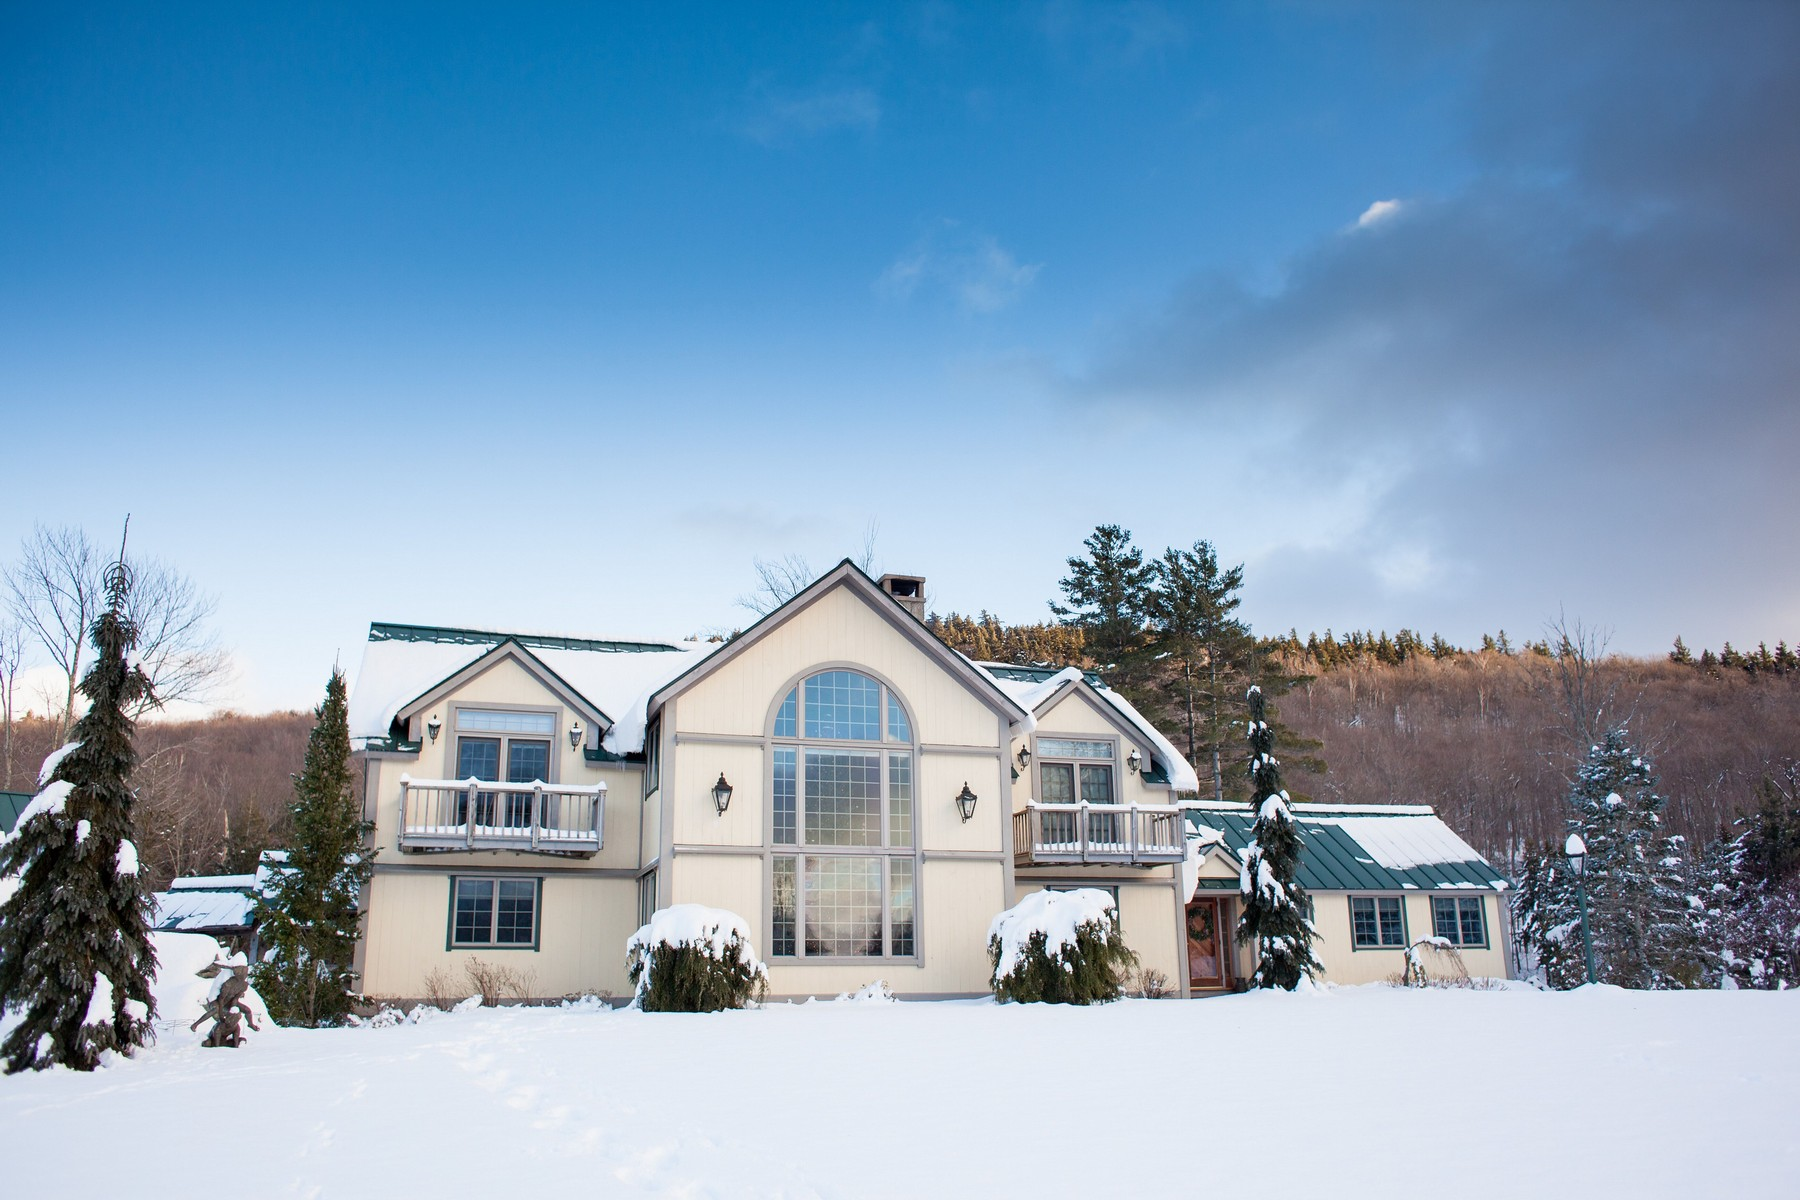 Single Family Homes for Sale at 1418 West Jamaica Road Jamaica, Vermont 05343 United States